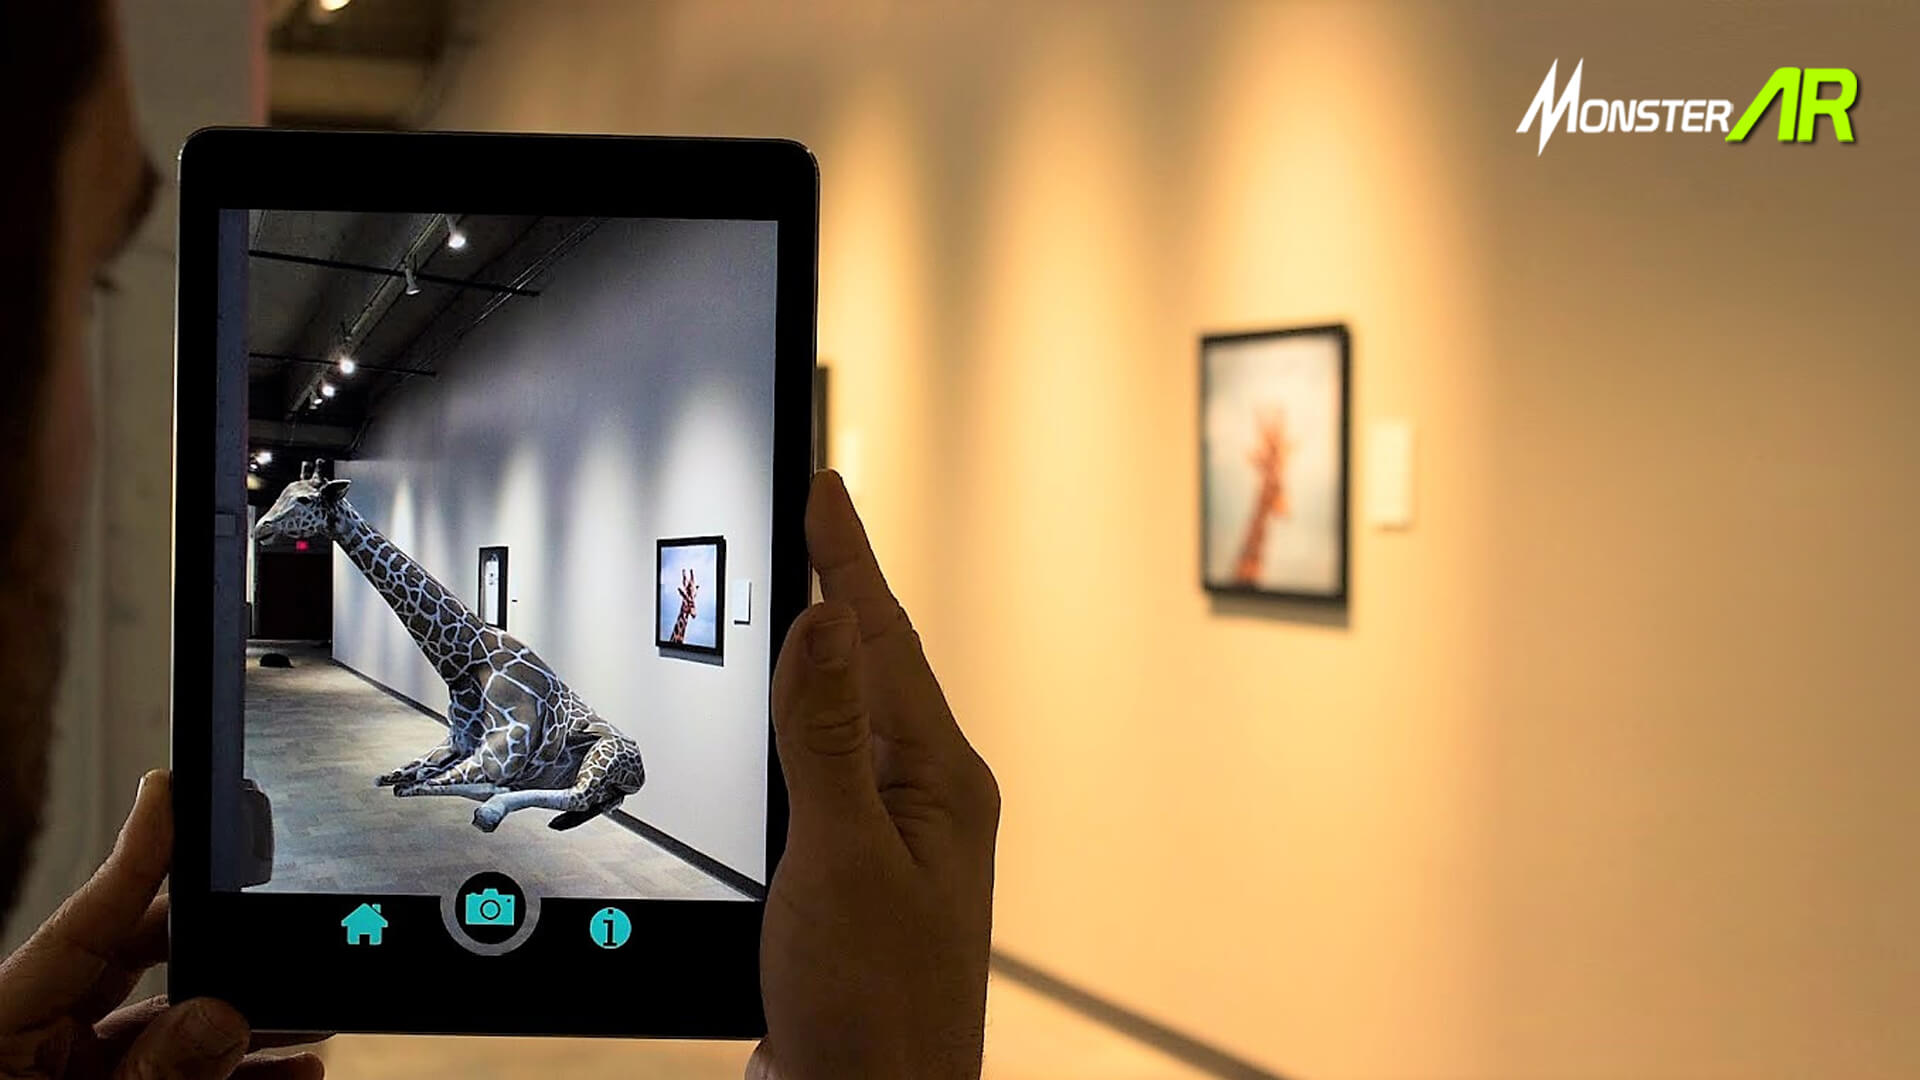 Museum Augmented Reality